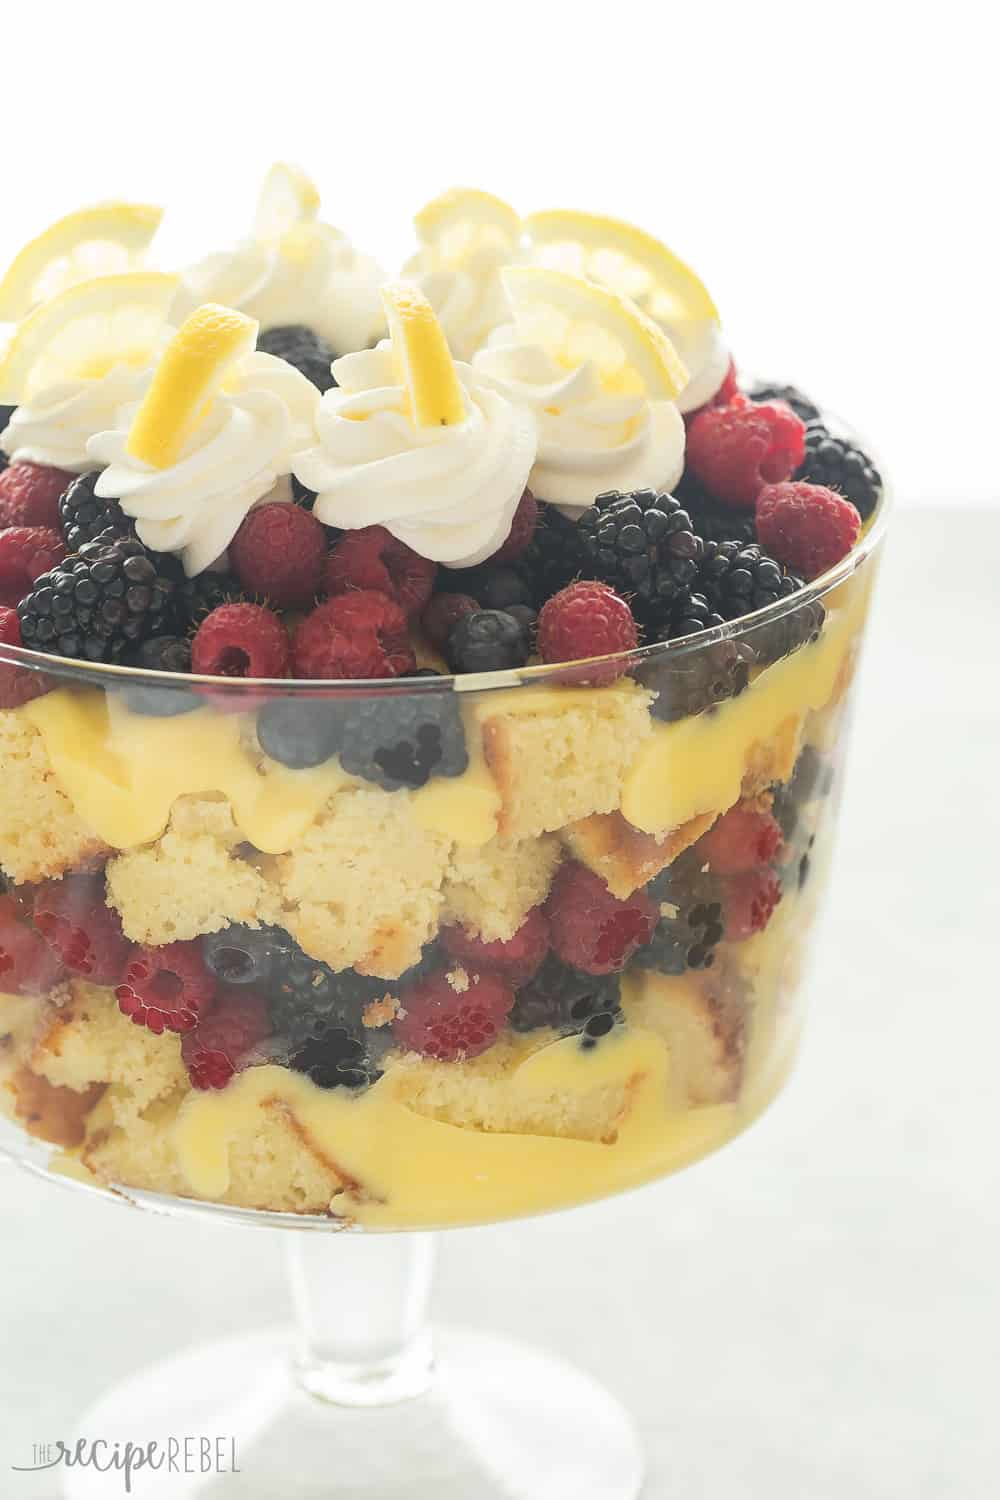 This Lemon Berry Trifle is perfectly tart and sweet, with a citrusy lemon cake, vanilla pudding, whipped cream and a load of berries! It's the perfect dessert for Easter or Spring.